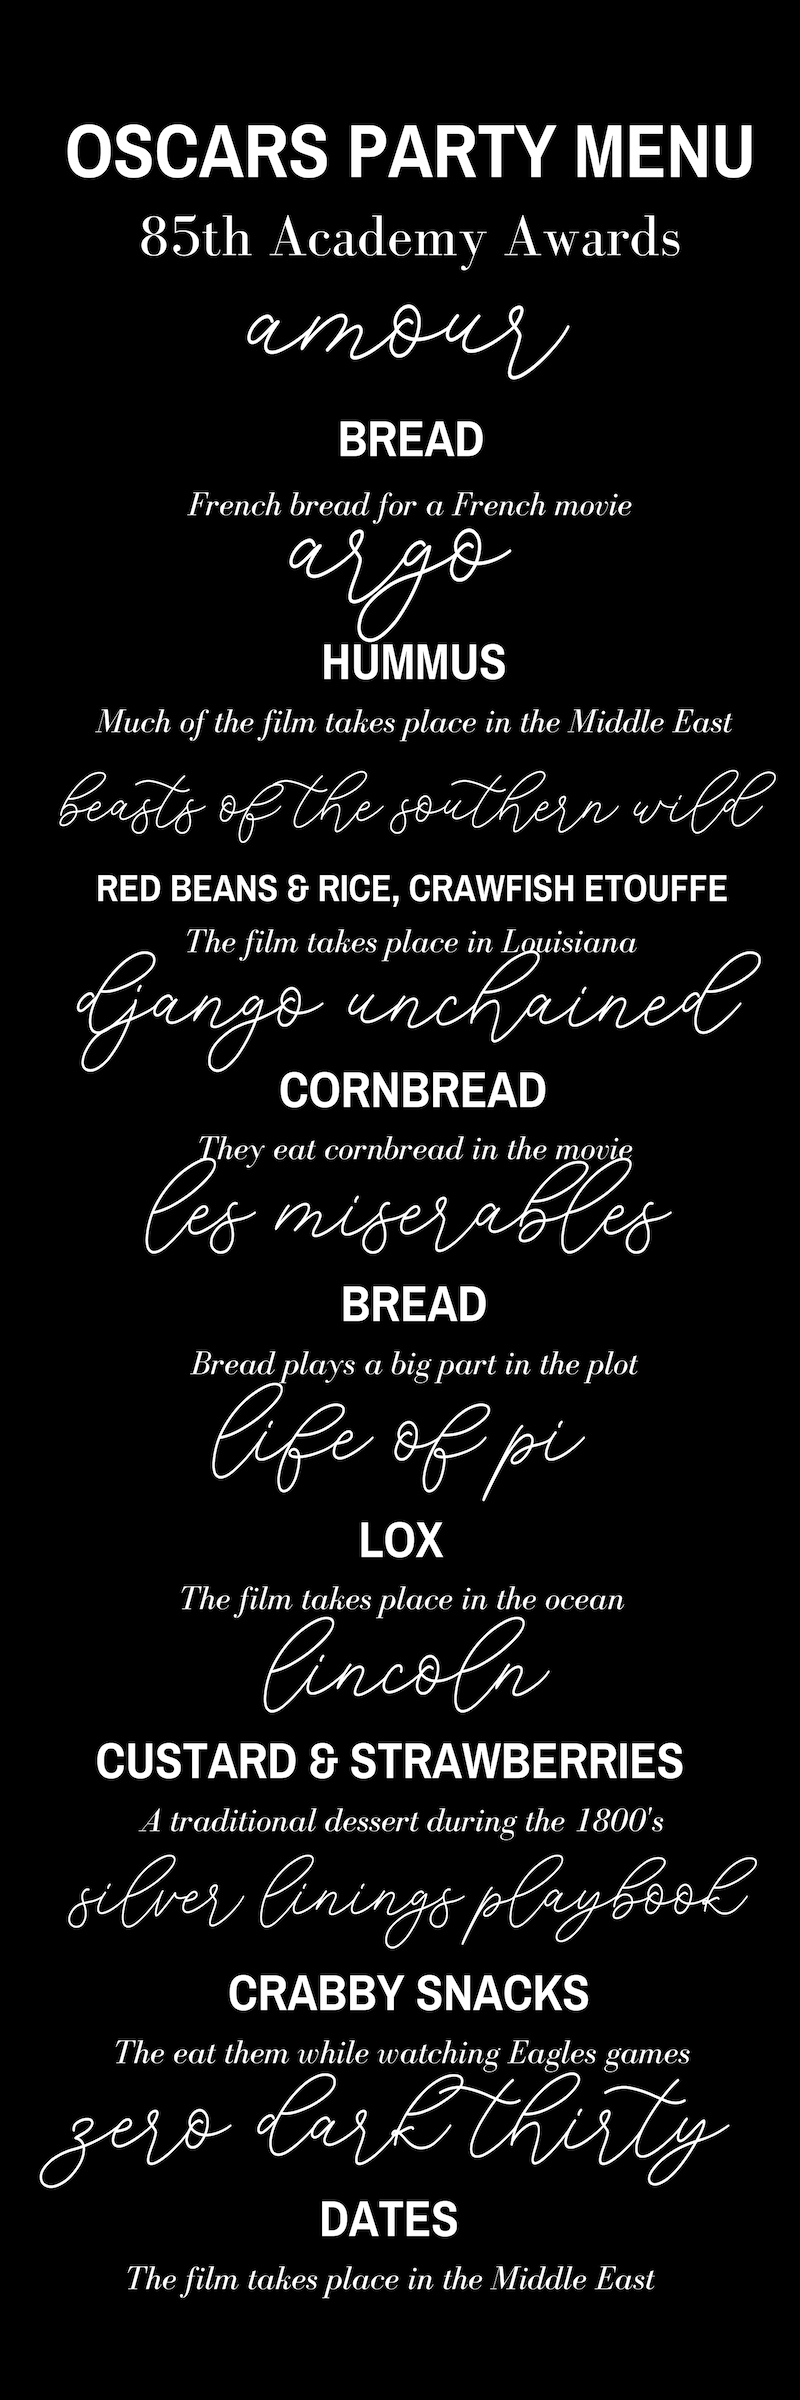 Oscars Party Menu